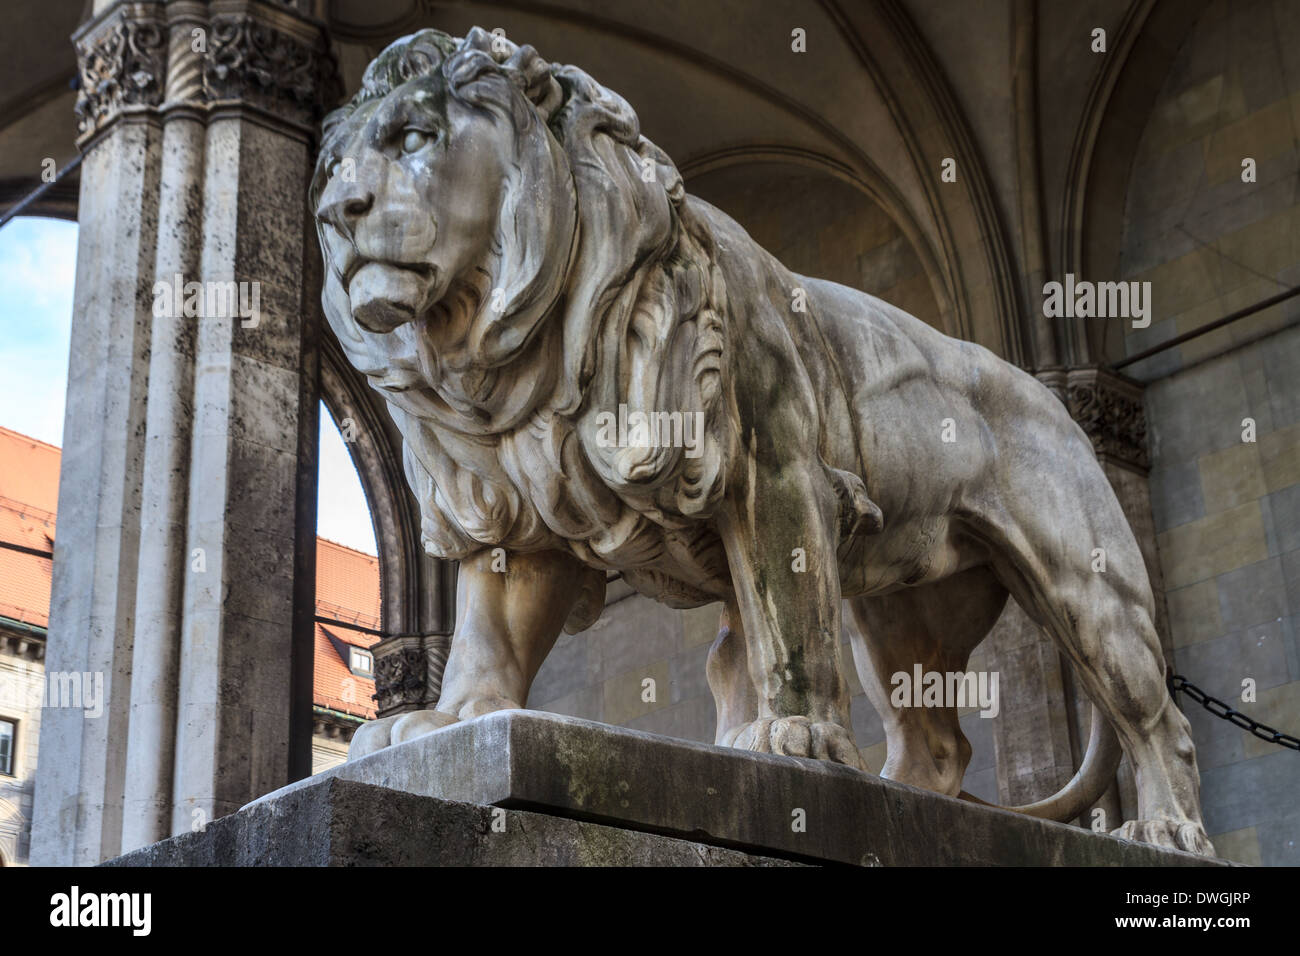 Munich, Bavarian Lion Statue in front of Feldherrnhalle, Bavaria, Germany - Stock Image